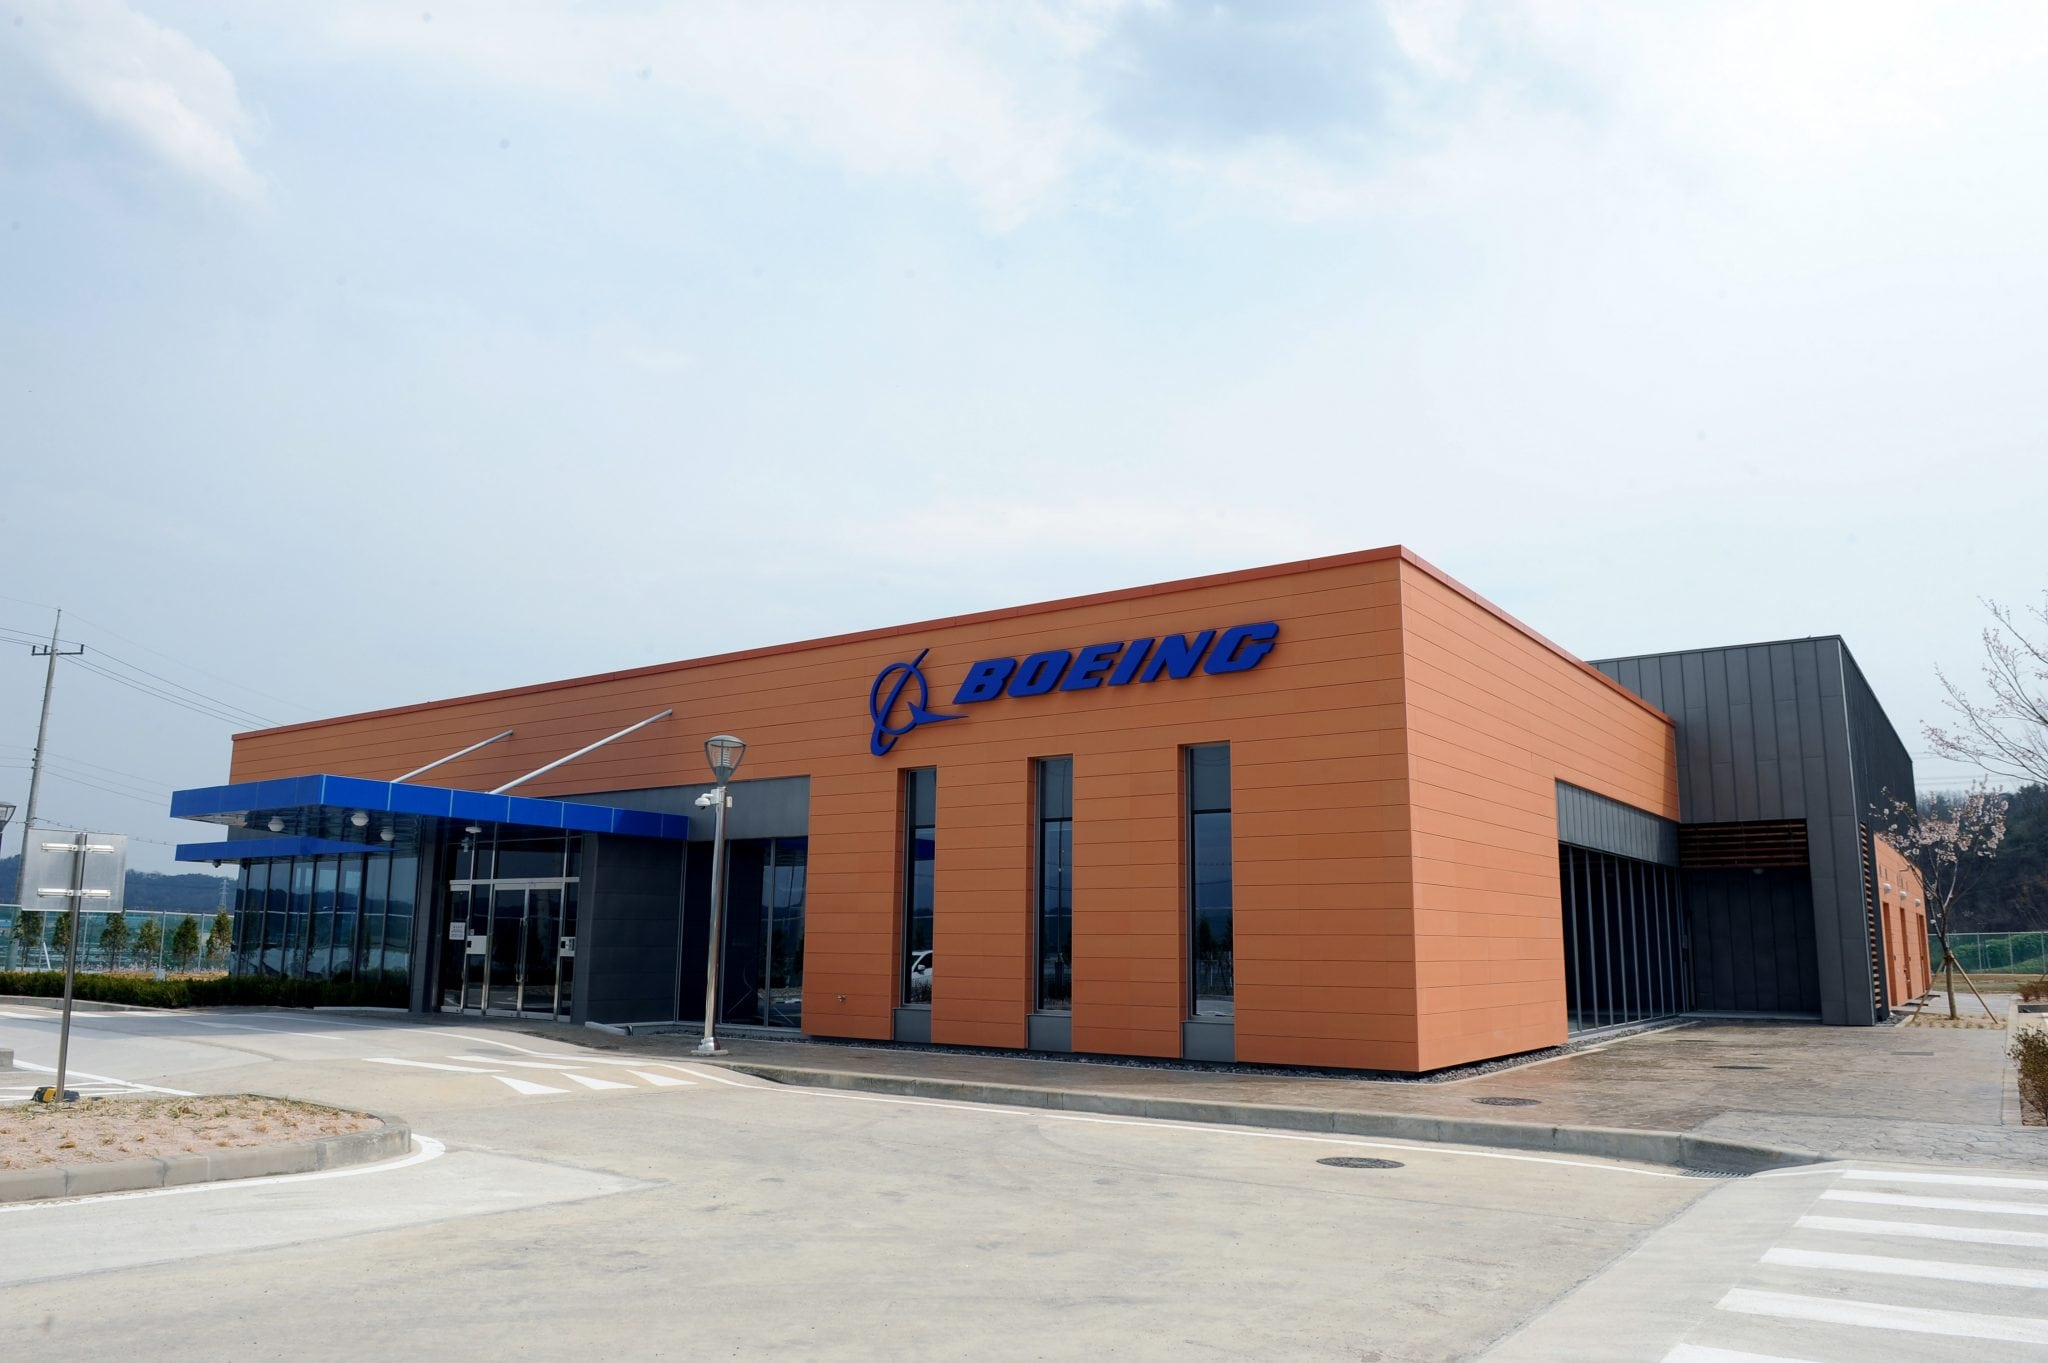 New Boeing avionics facility showcases investment in Korean aerospace industry.